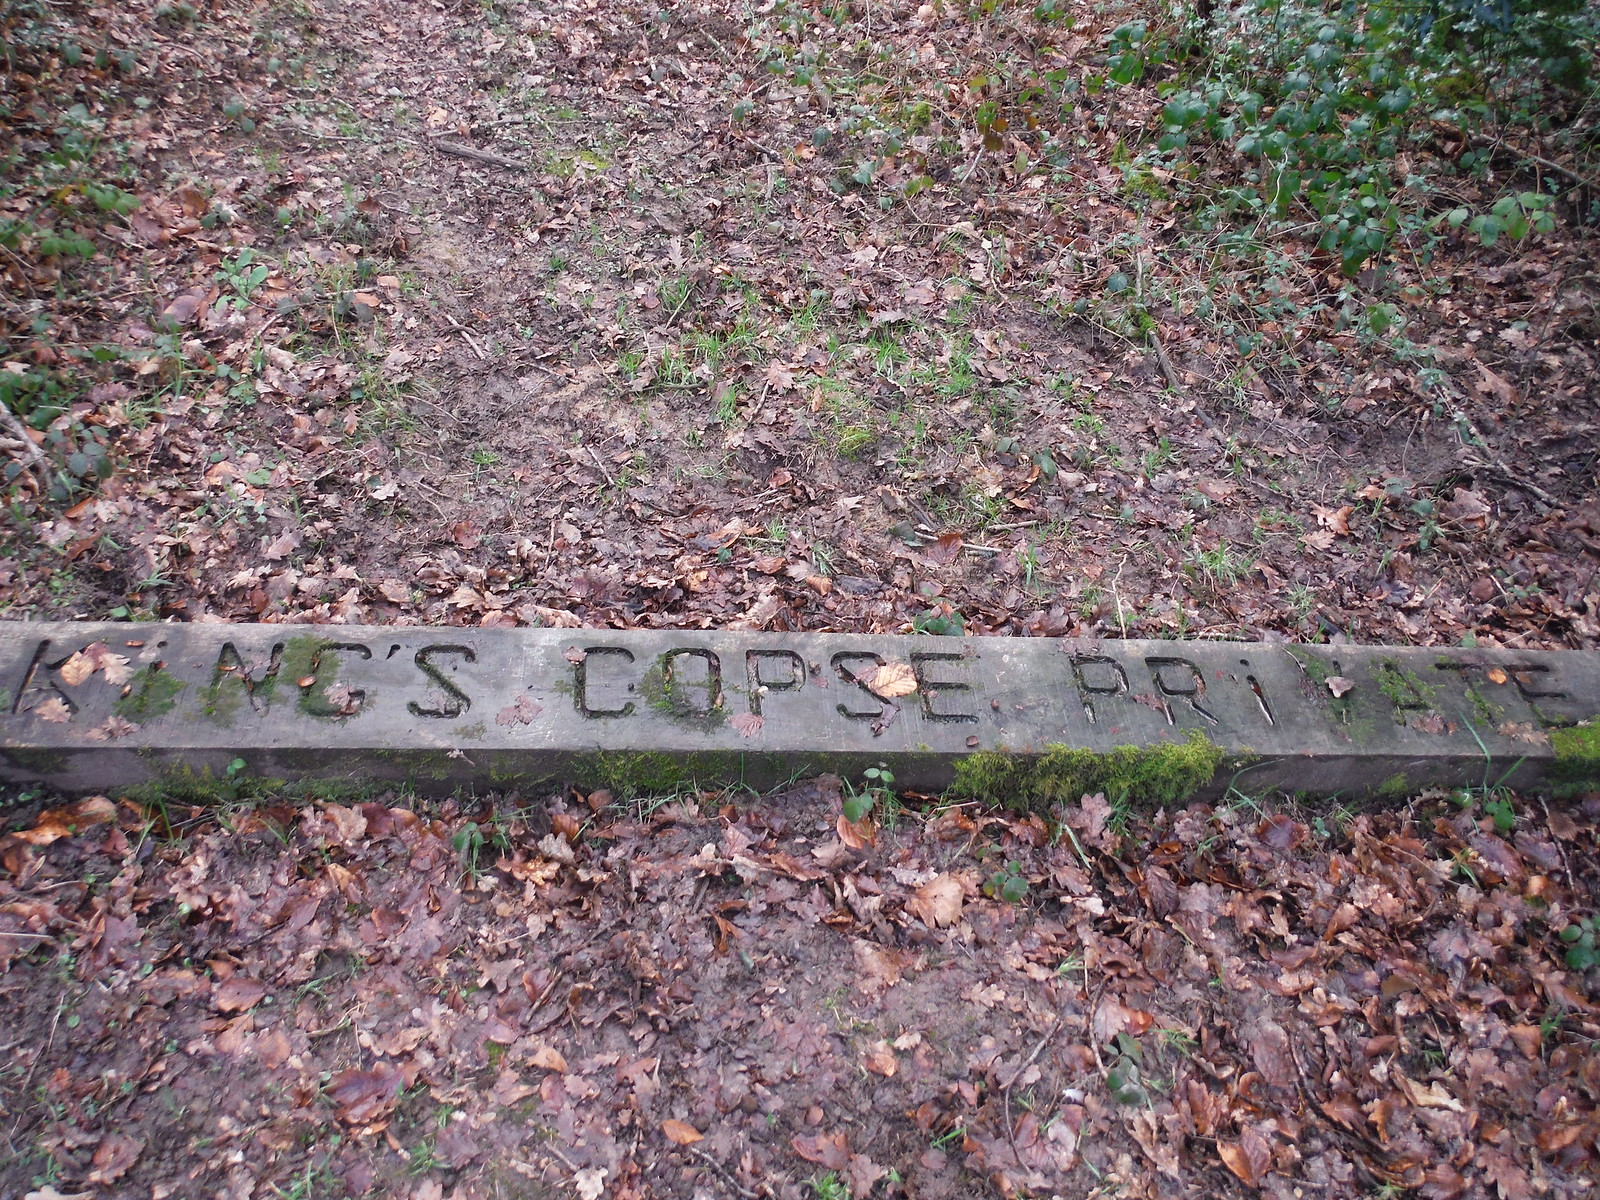 King's Copse waymarker, Stanford Dingley SWC Walk 117 Aldermaston to Woolhampton (via Stanford Dingley)